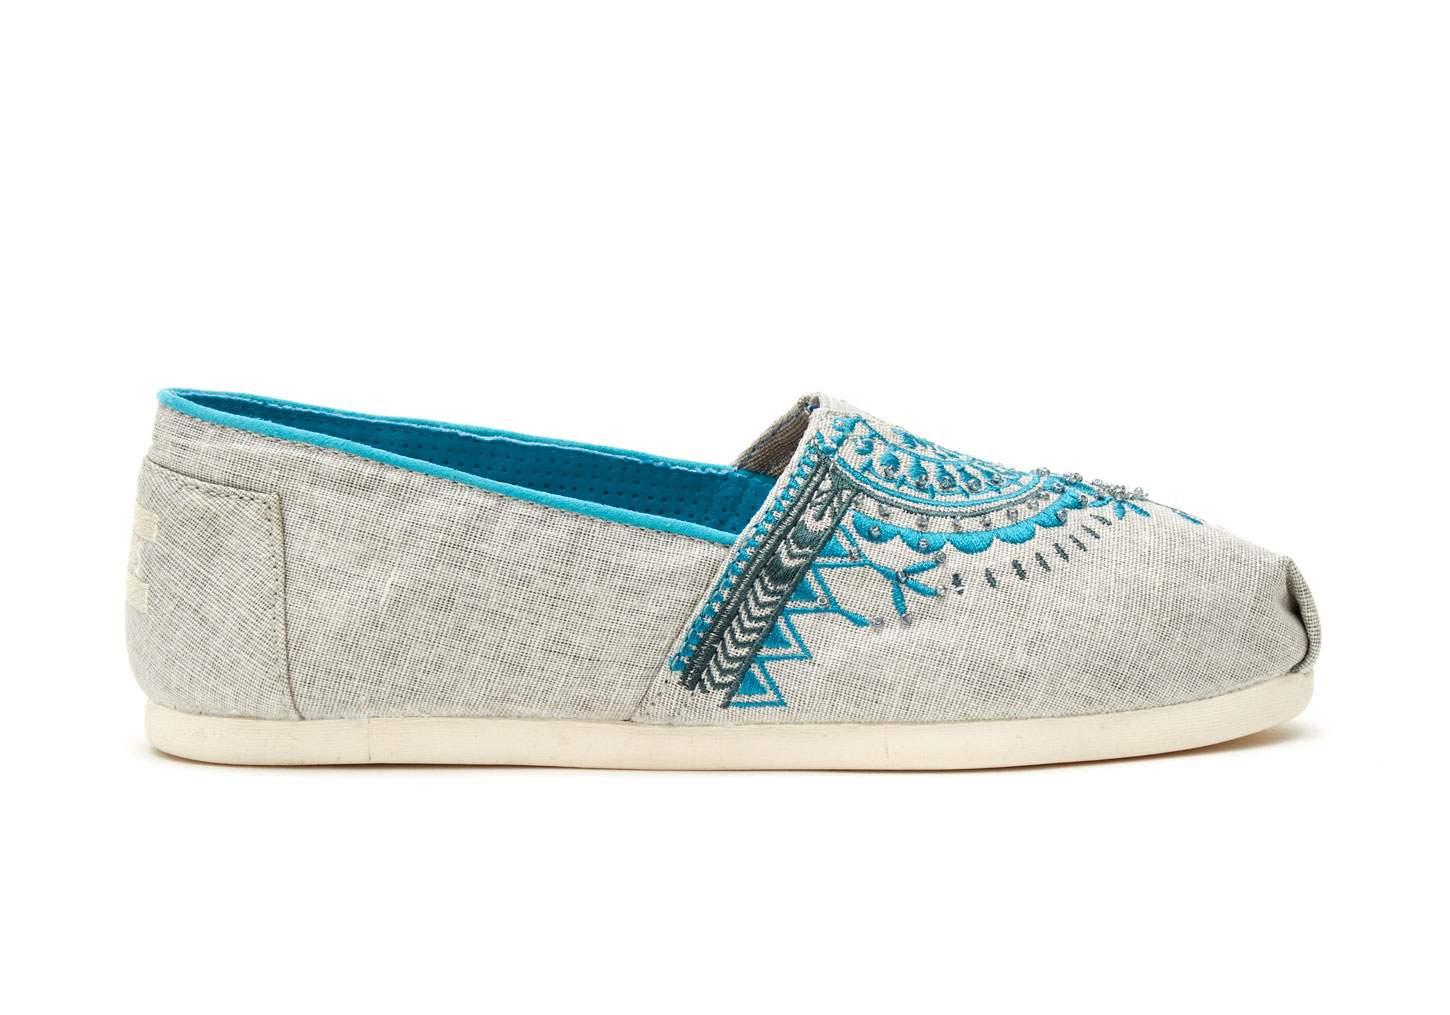 406de6876dc TOMS Light Grey Canvas Beaded Embroidery Women s Classics in Blue - Lyst